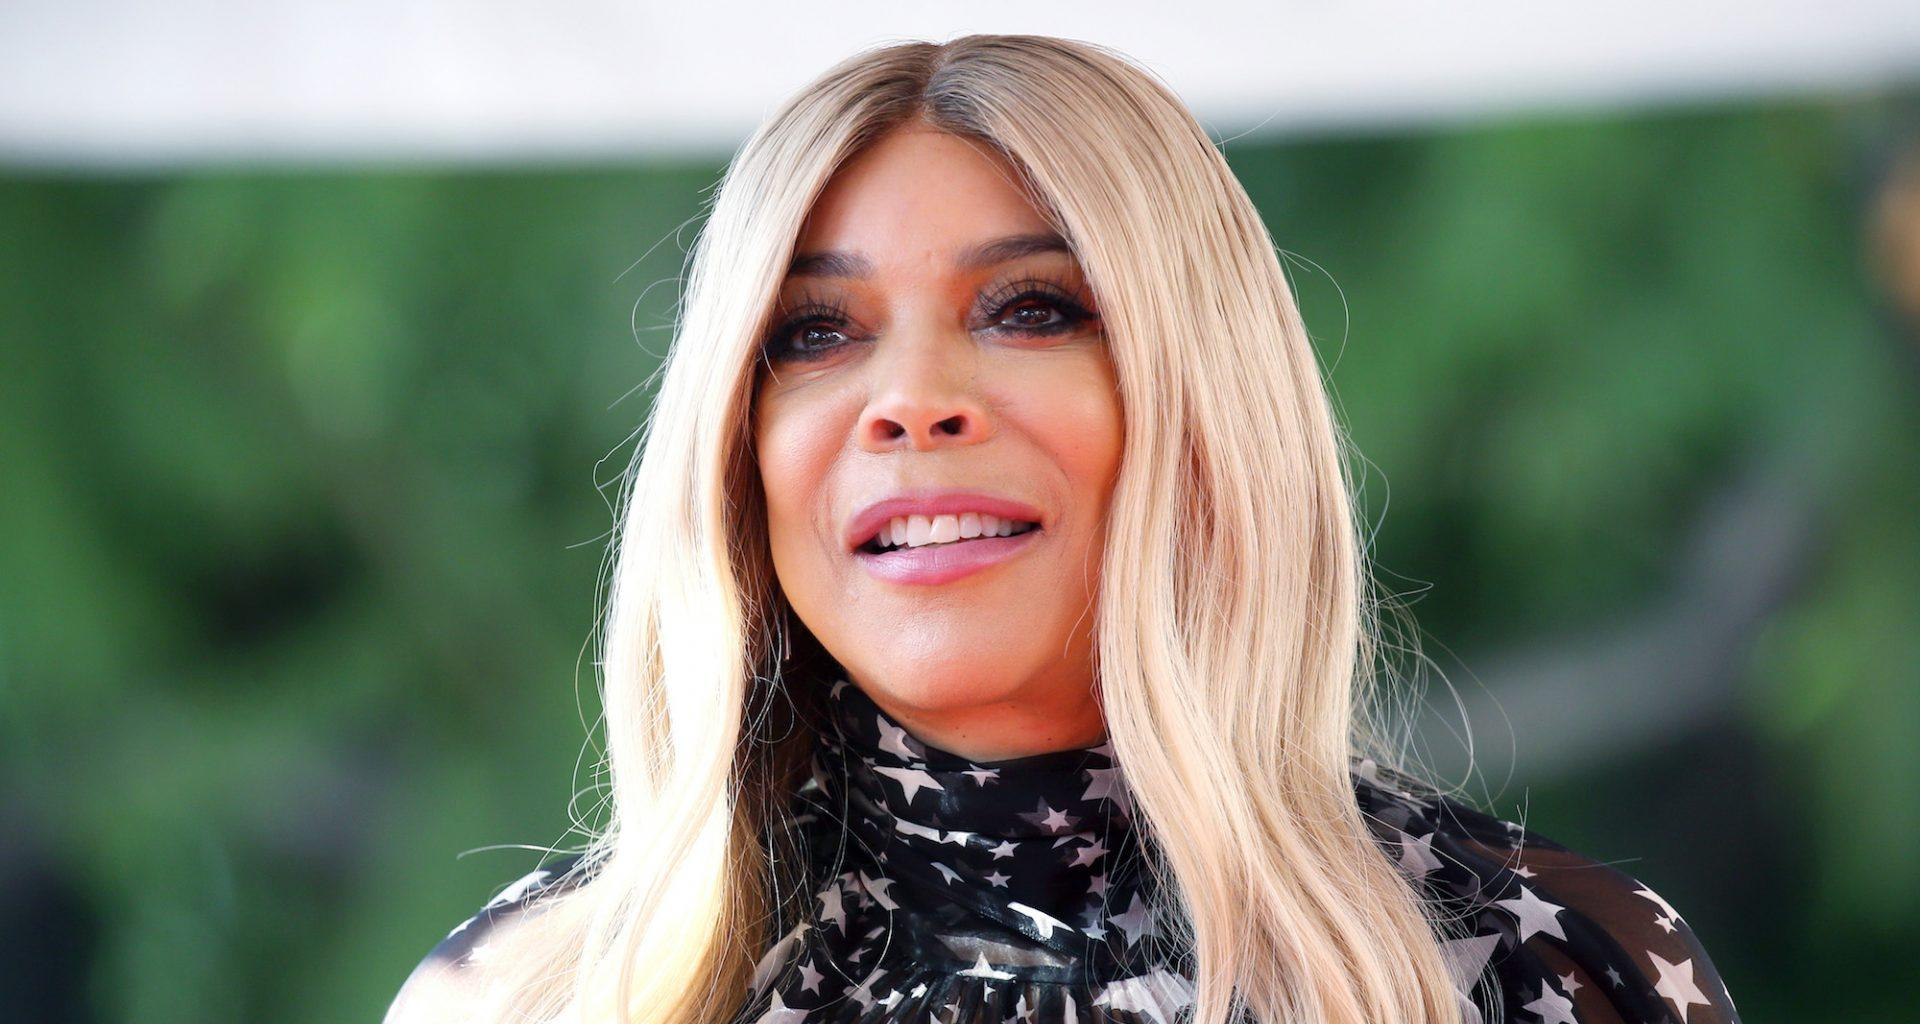 Wendy Williams Documents Her Date Night With Photos On Social Media - See Her Alleged New Man